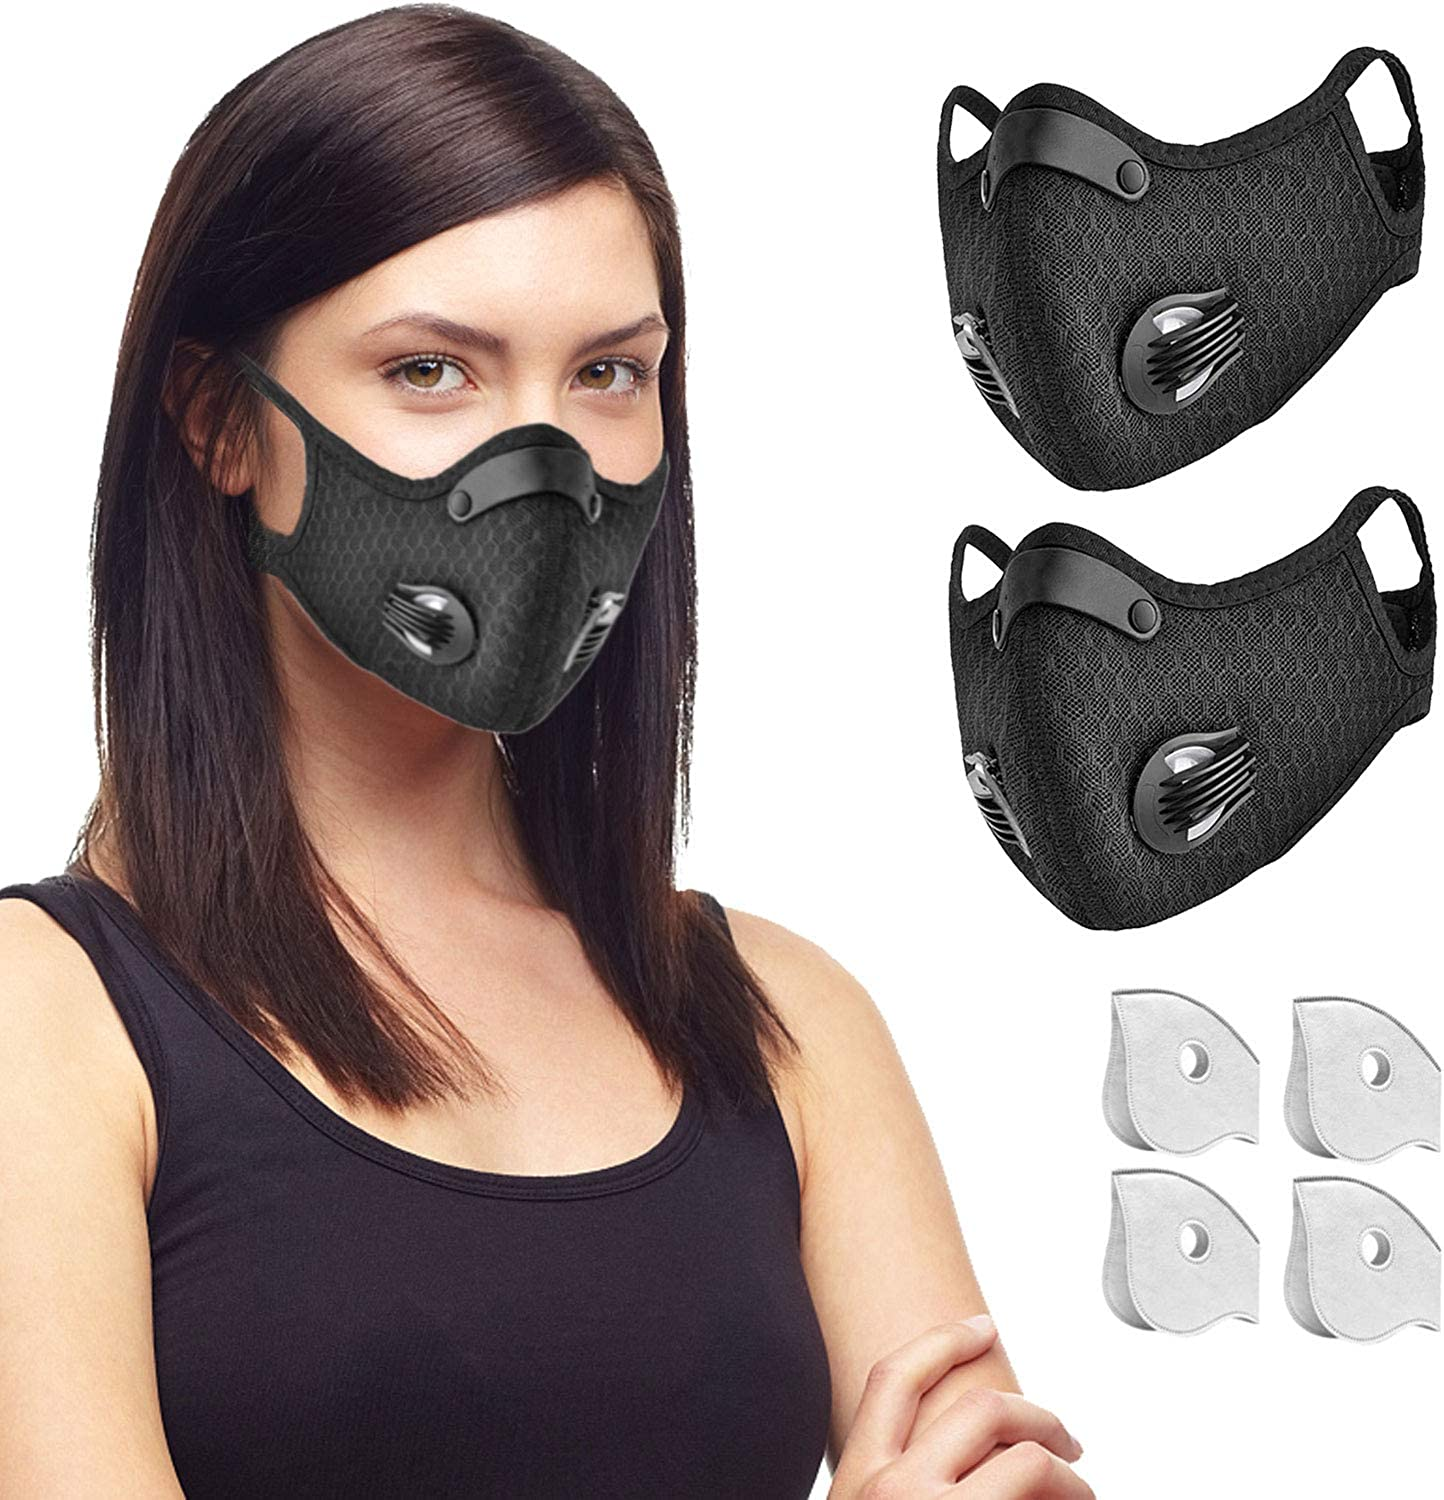 Mesh Breathable Activated Carbon Filter Dustproof Anti-haze Outdoor Jogging Mask